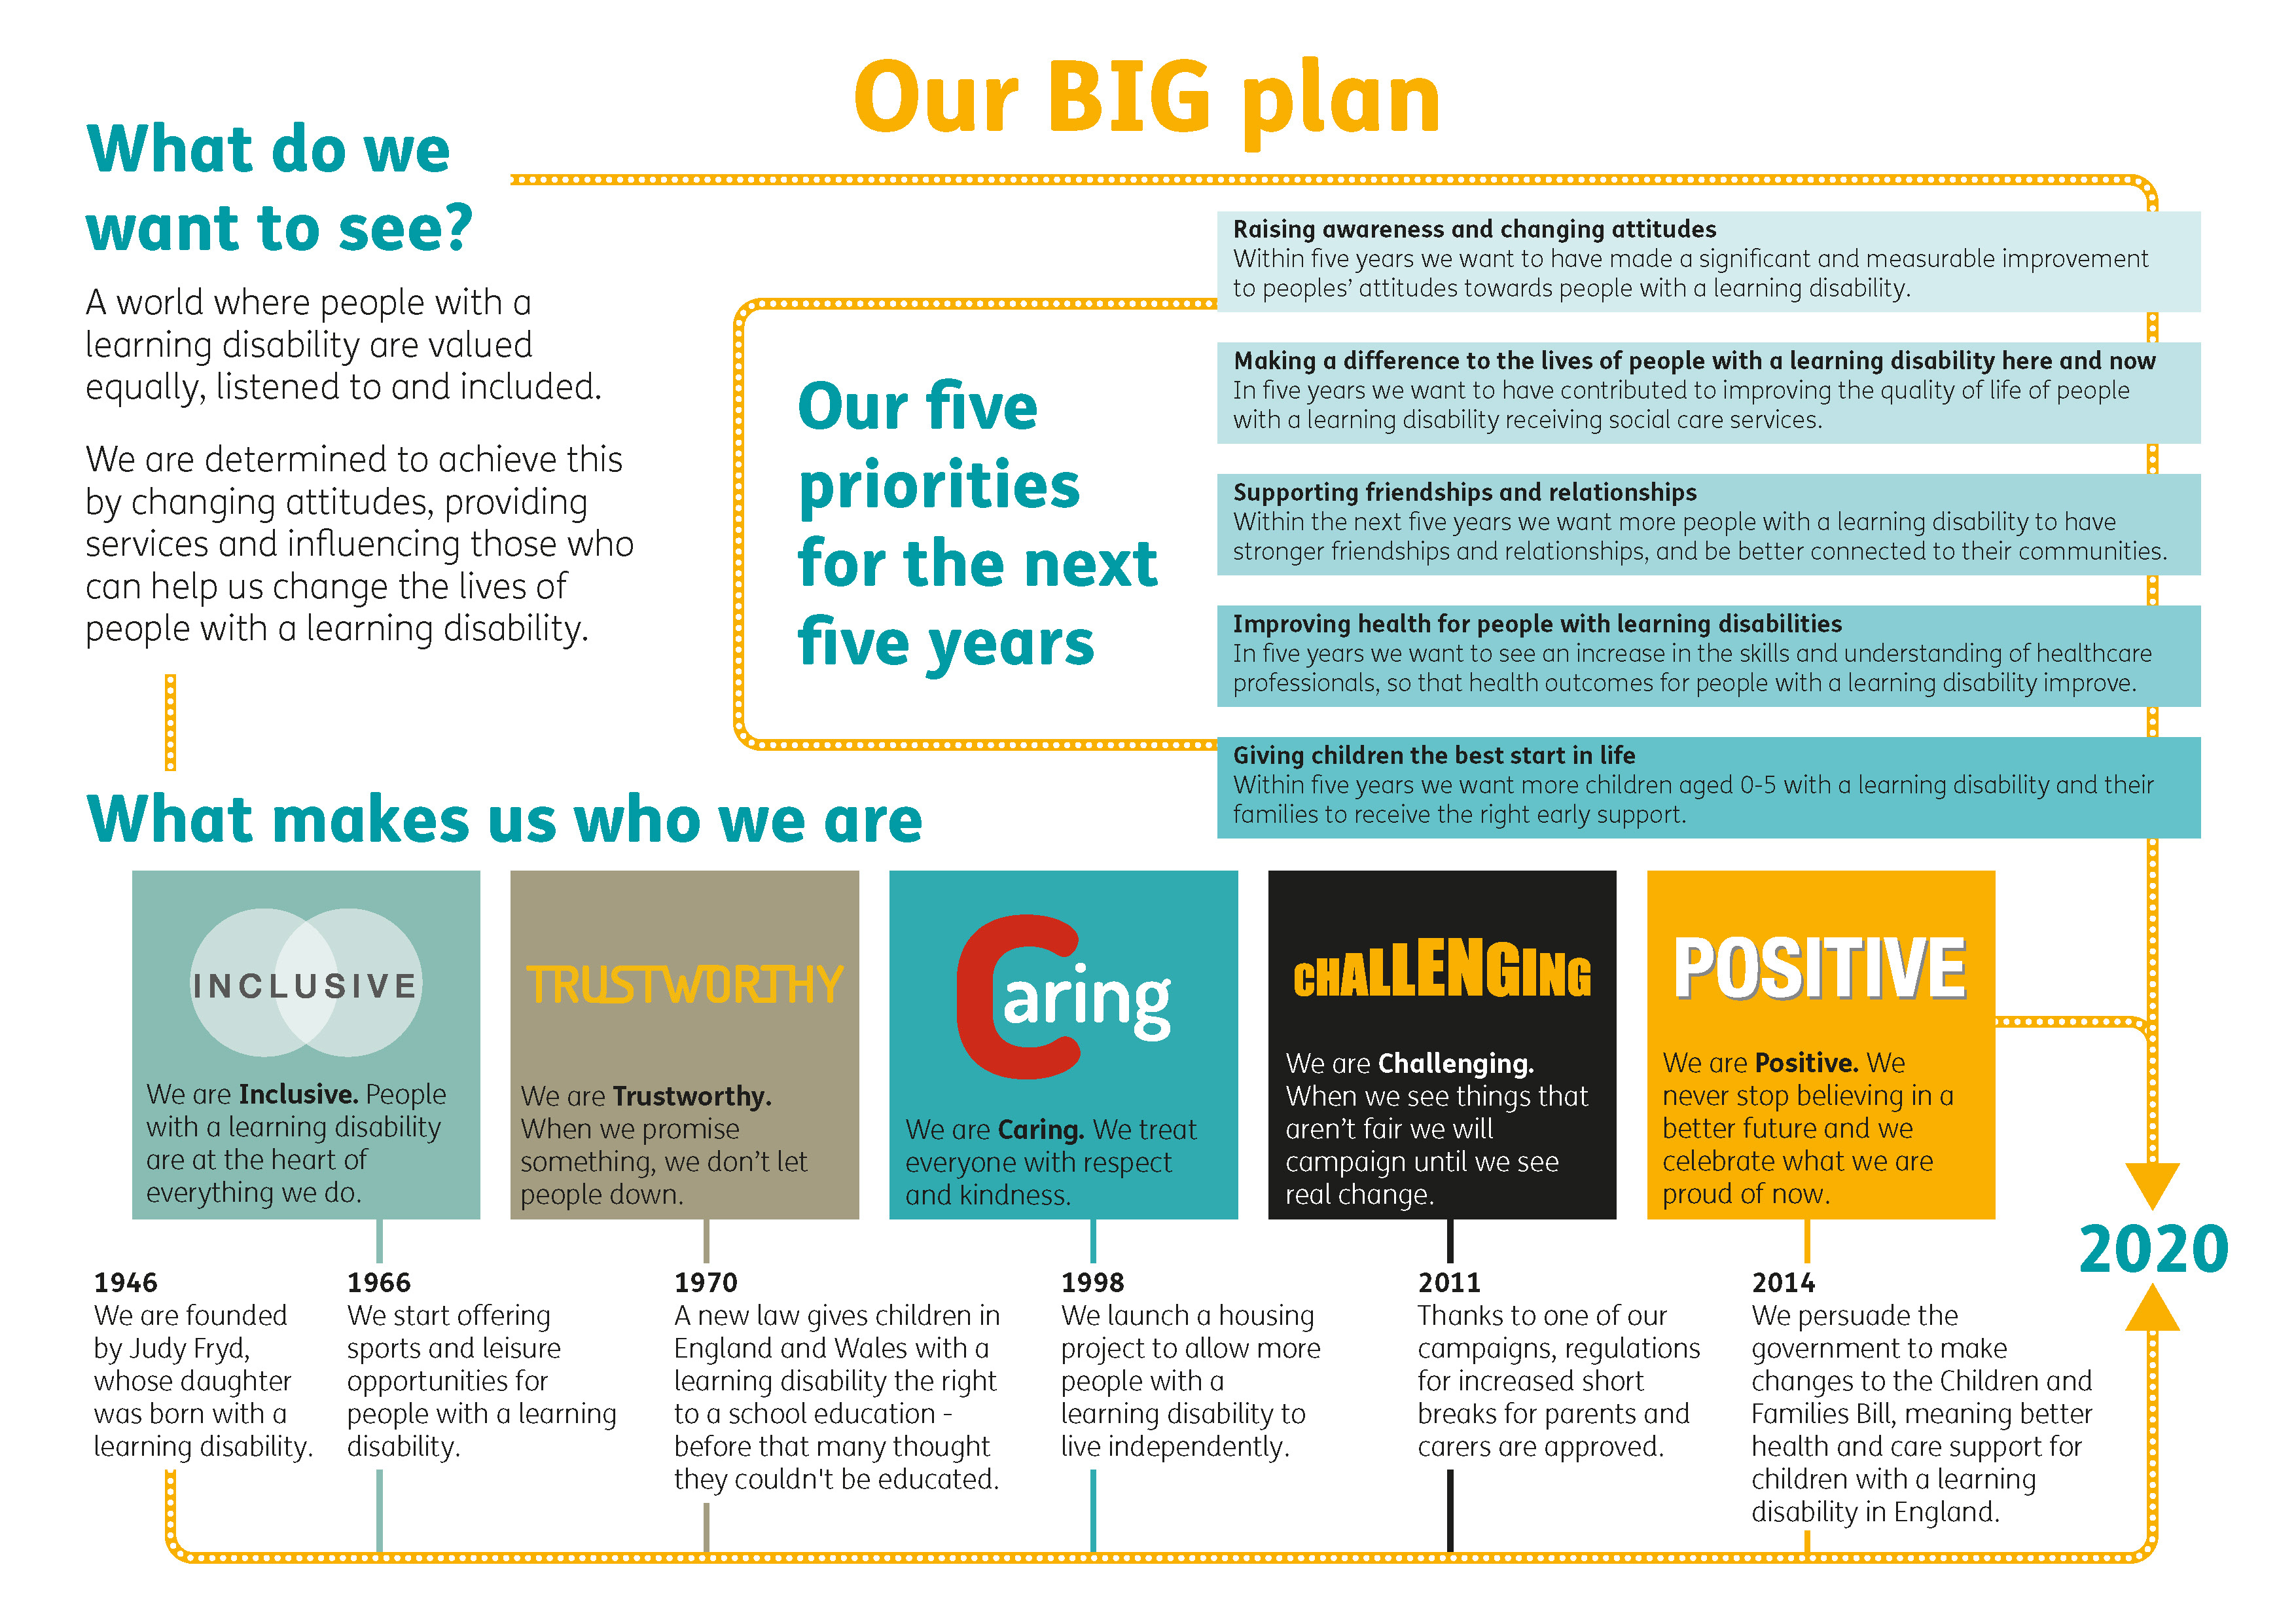 internal comms strategy template - mencap shows how to successfully launch a big plan all